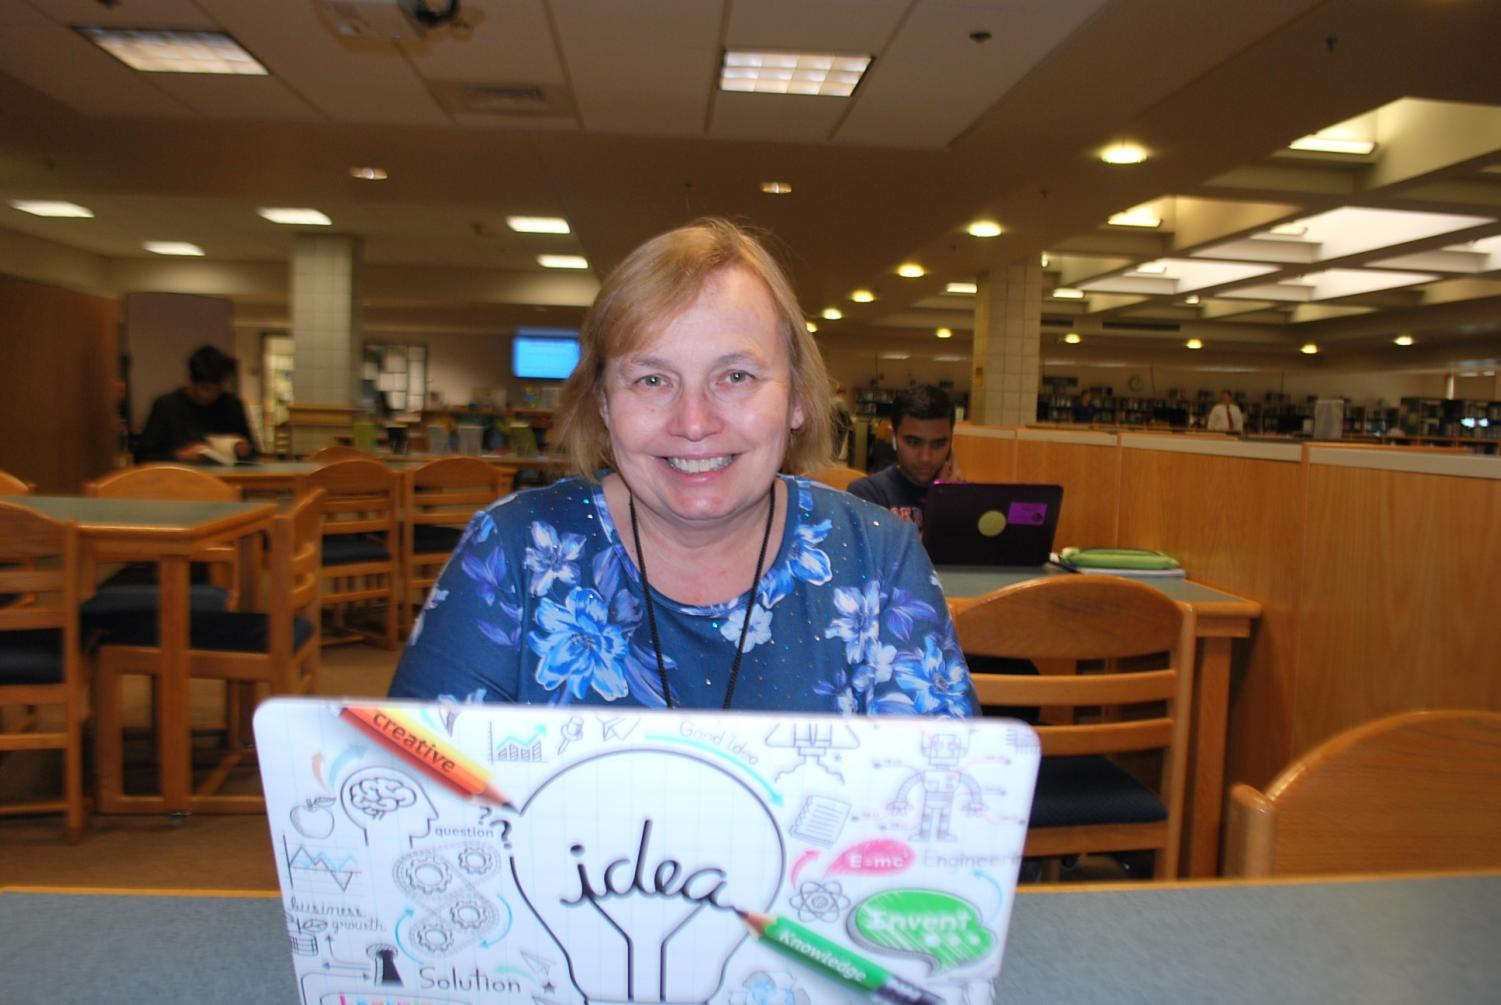 Marianne Butterline poses for a picture in the school library